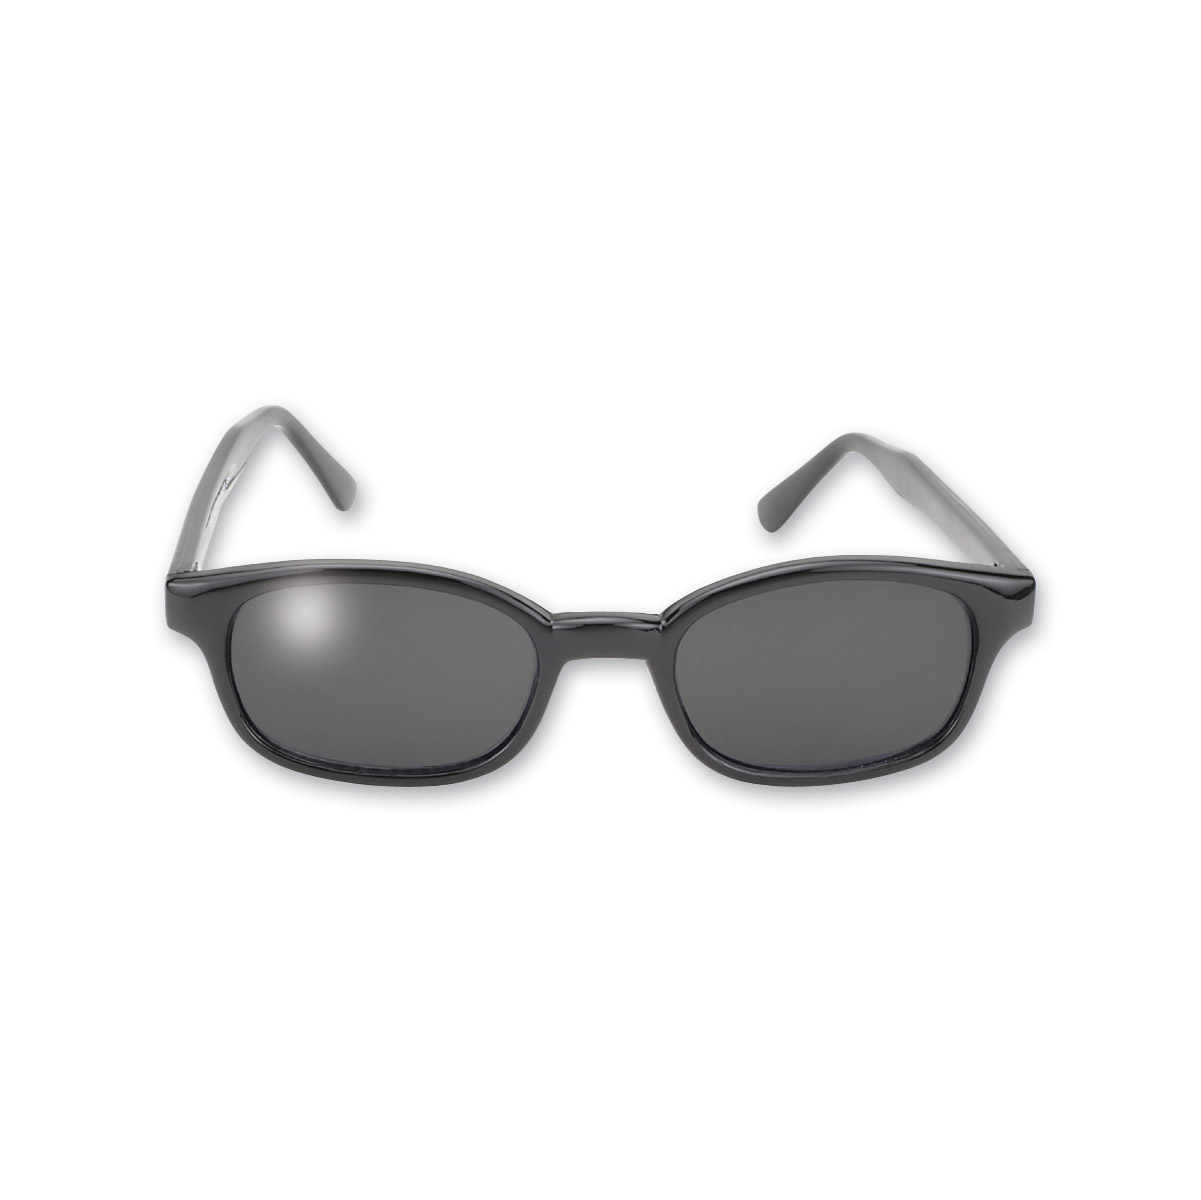 Original KD's Sunglasses-Black Frame with Smoke Lens